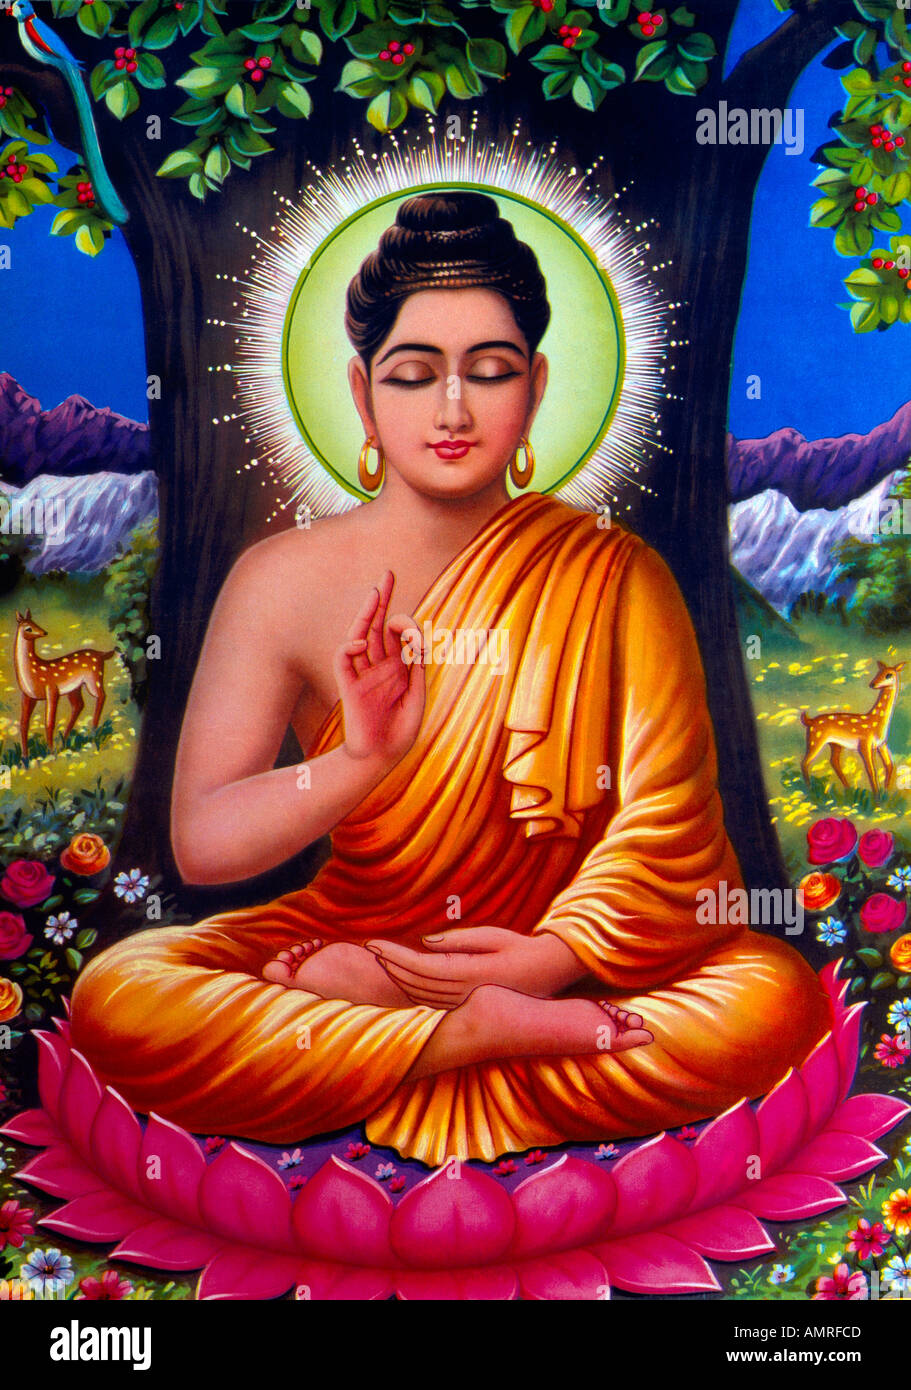 Deity sitting on lotus stock photos deity sitting on lotus stock buddha under bodhi tree sitting on a lotus flower indian painting stock image izmirmasajfo